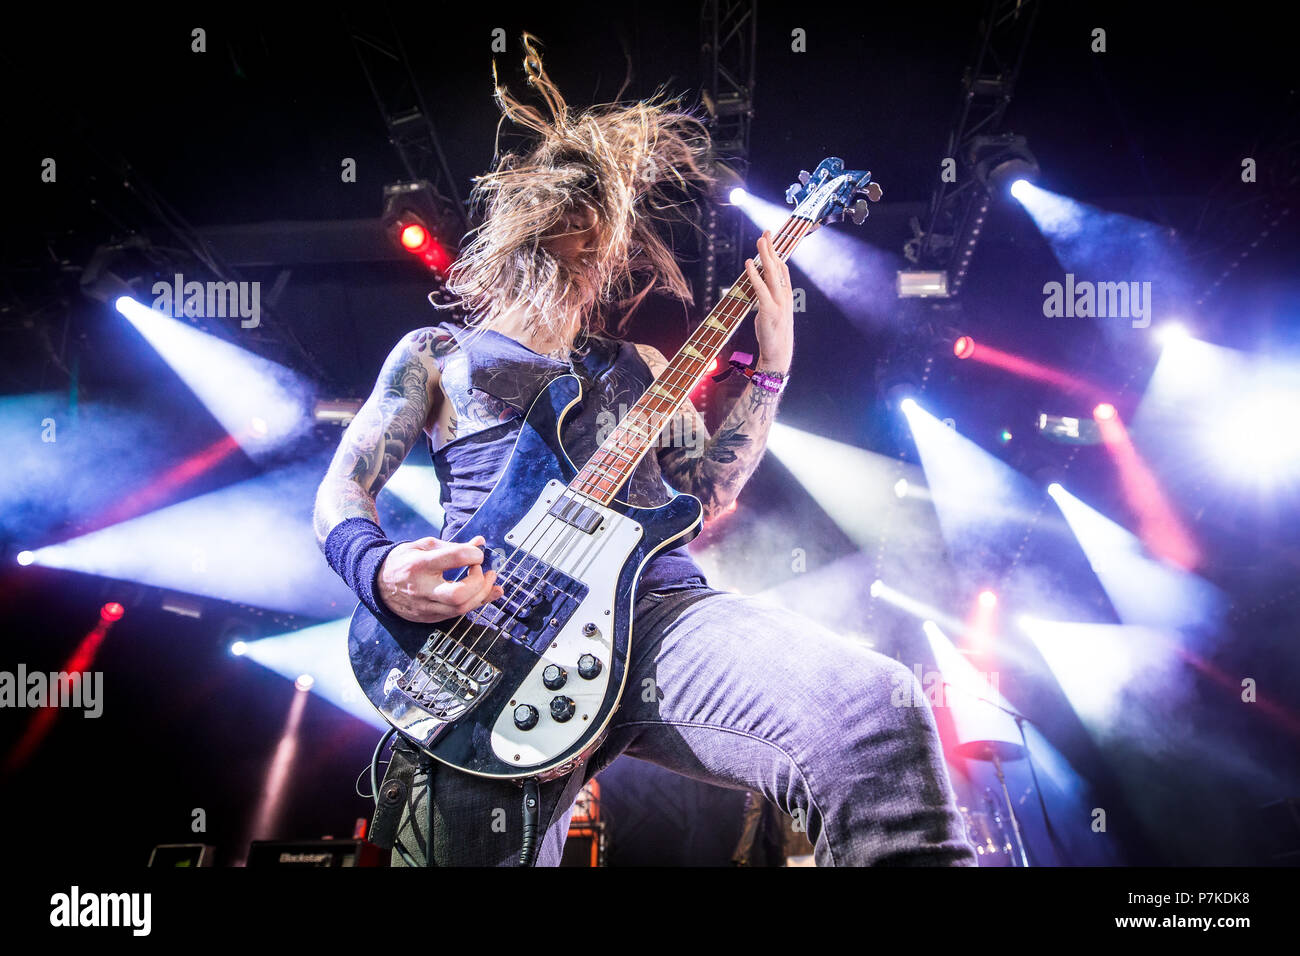 Roskilde, Denmark. 6th July 2018. The American extreme metal band Skeletonwitch performs a live concert at during the Danish music festival Roskilde Festival 2018. Here bass player Evan Linger is seen live on stage. (Photo credit: Gonzales Photo - Peter Troest). Credit: Gonzales Photo/Alamy Live News - Stock Image